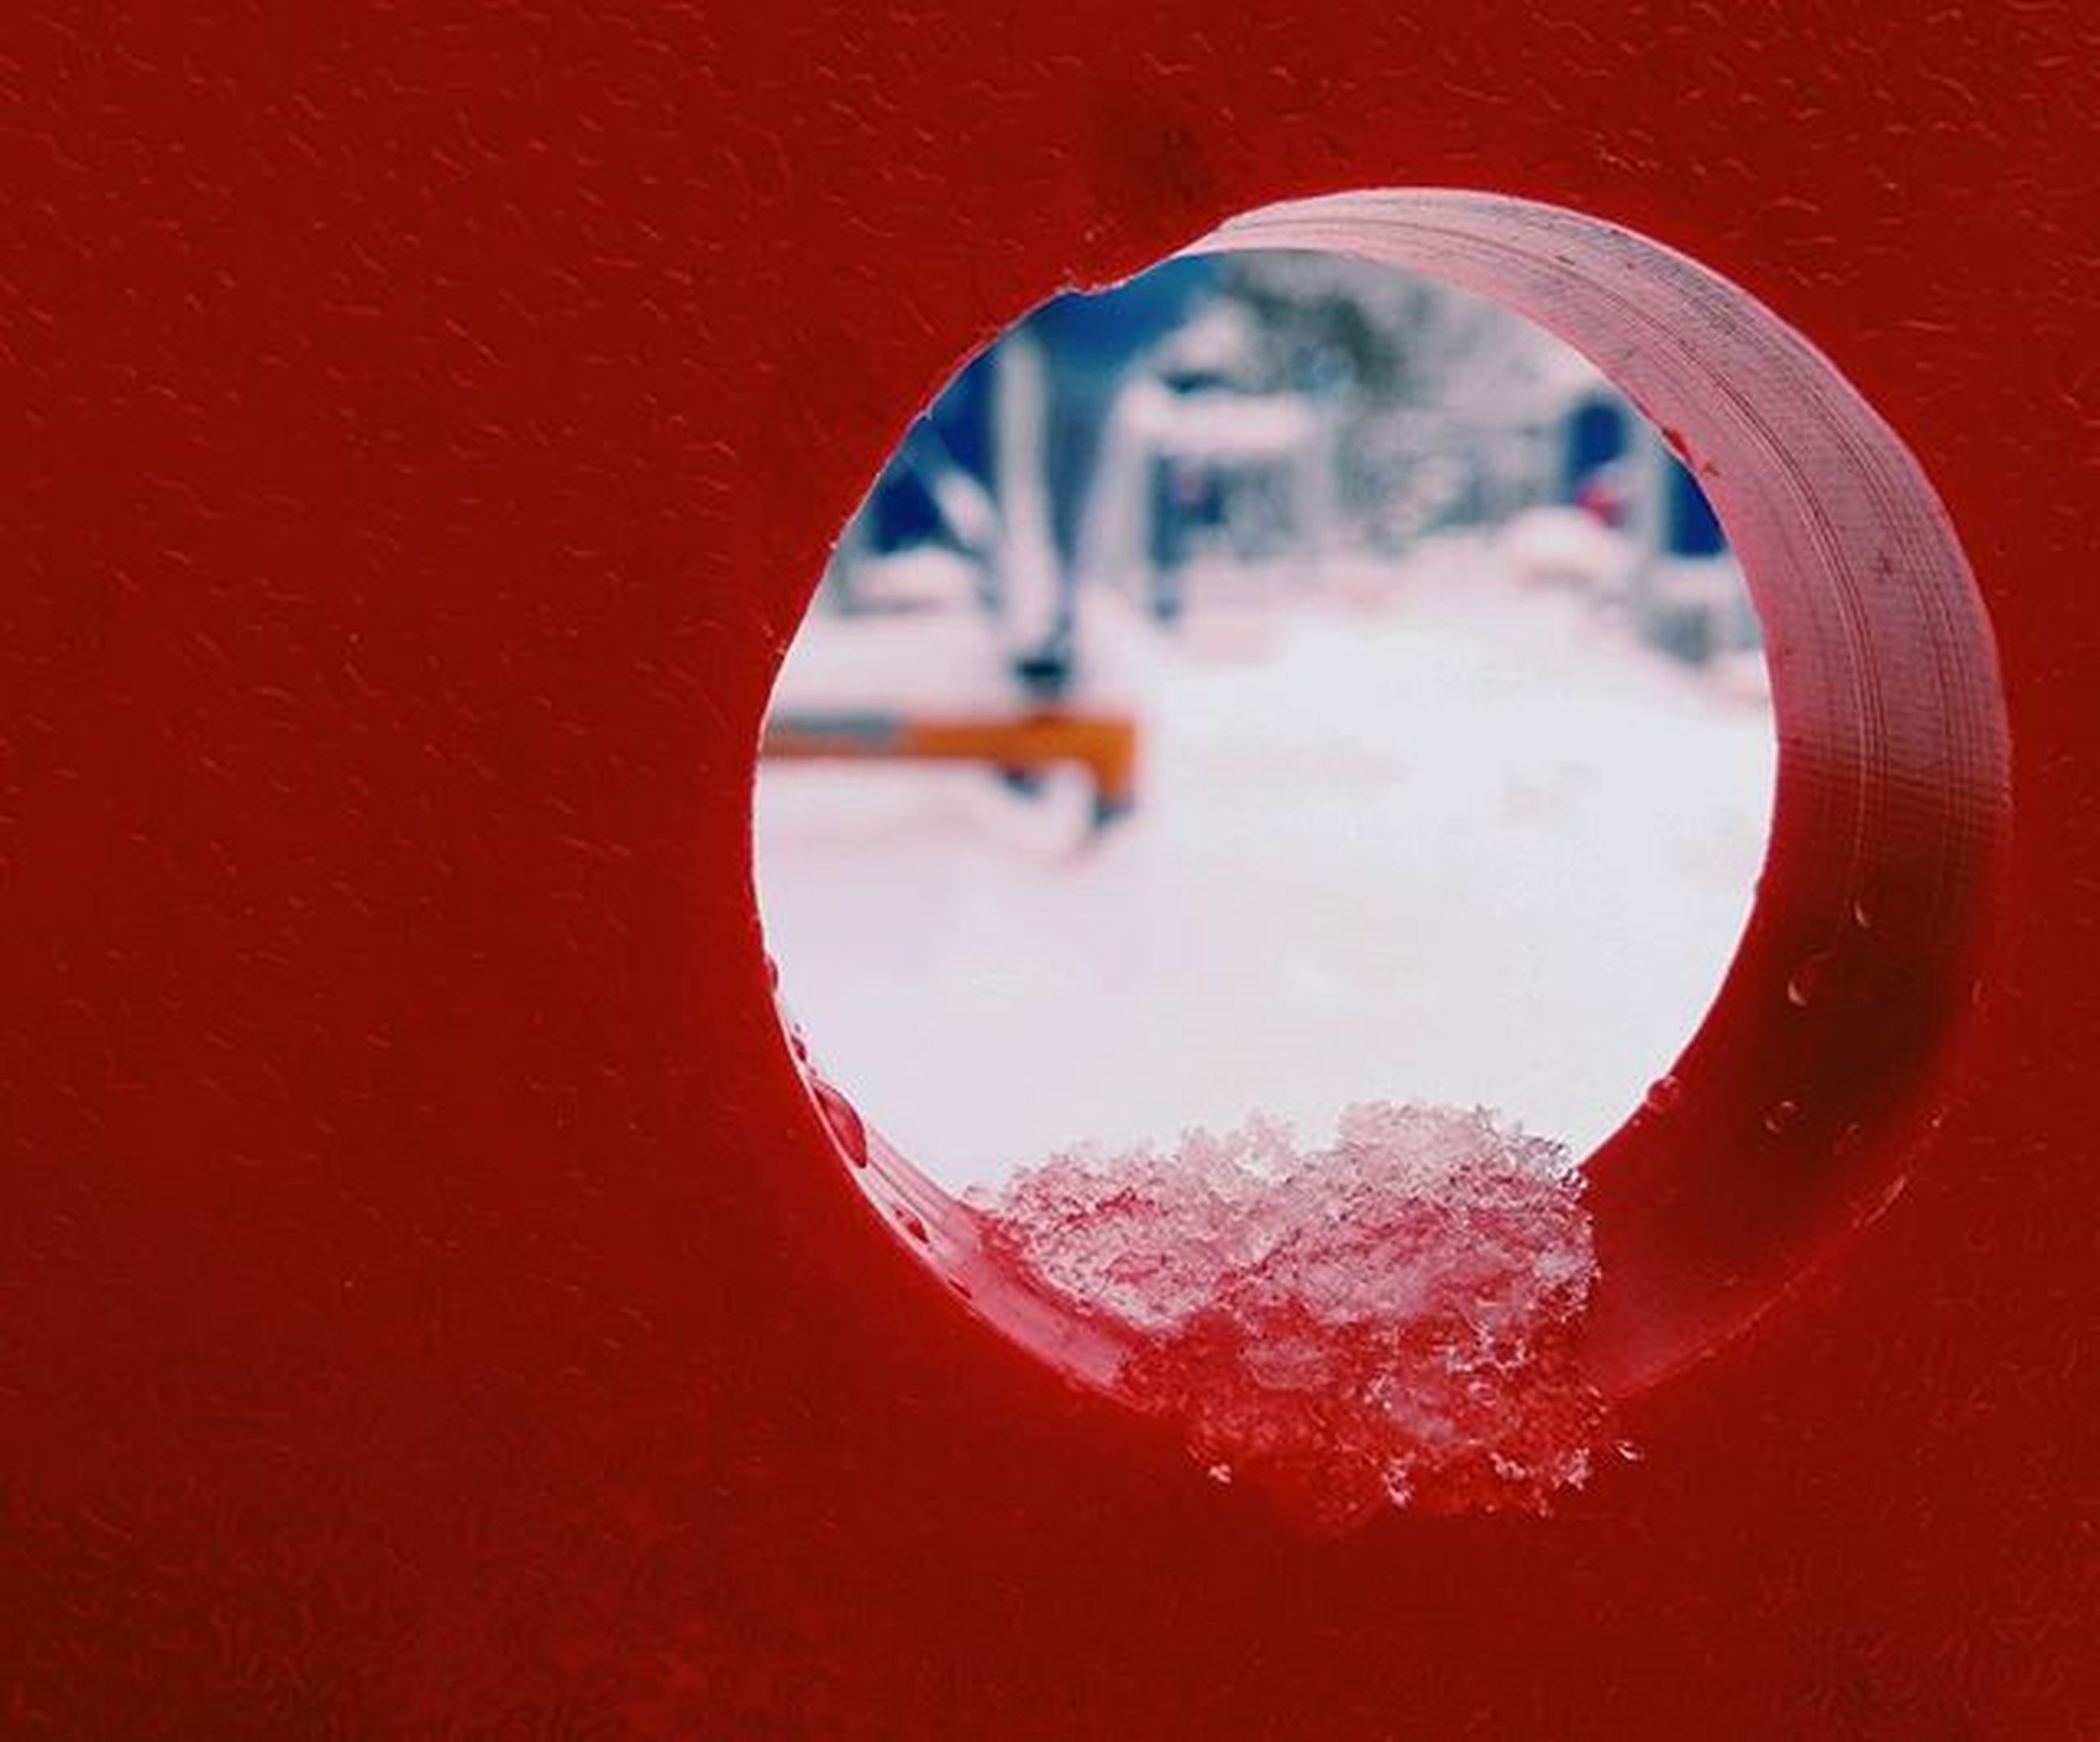 red, close-up, circle, indoors, tree, season, window, focus on foreground, day, water, no people, part of, shape, reflection, rain, hole, sky, geometric shape, transparent